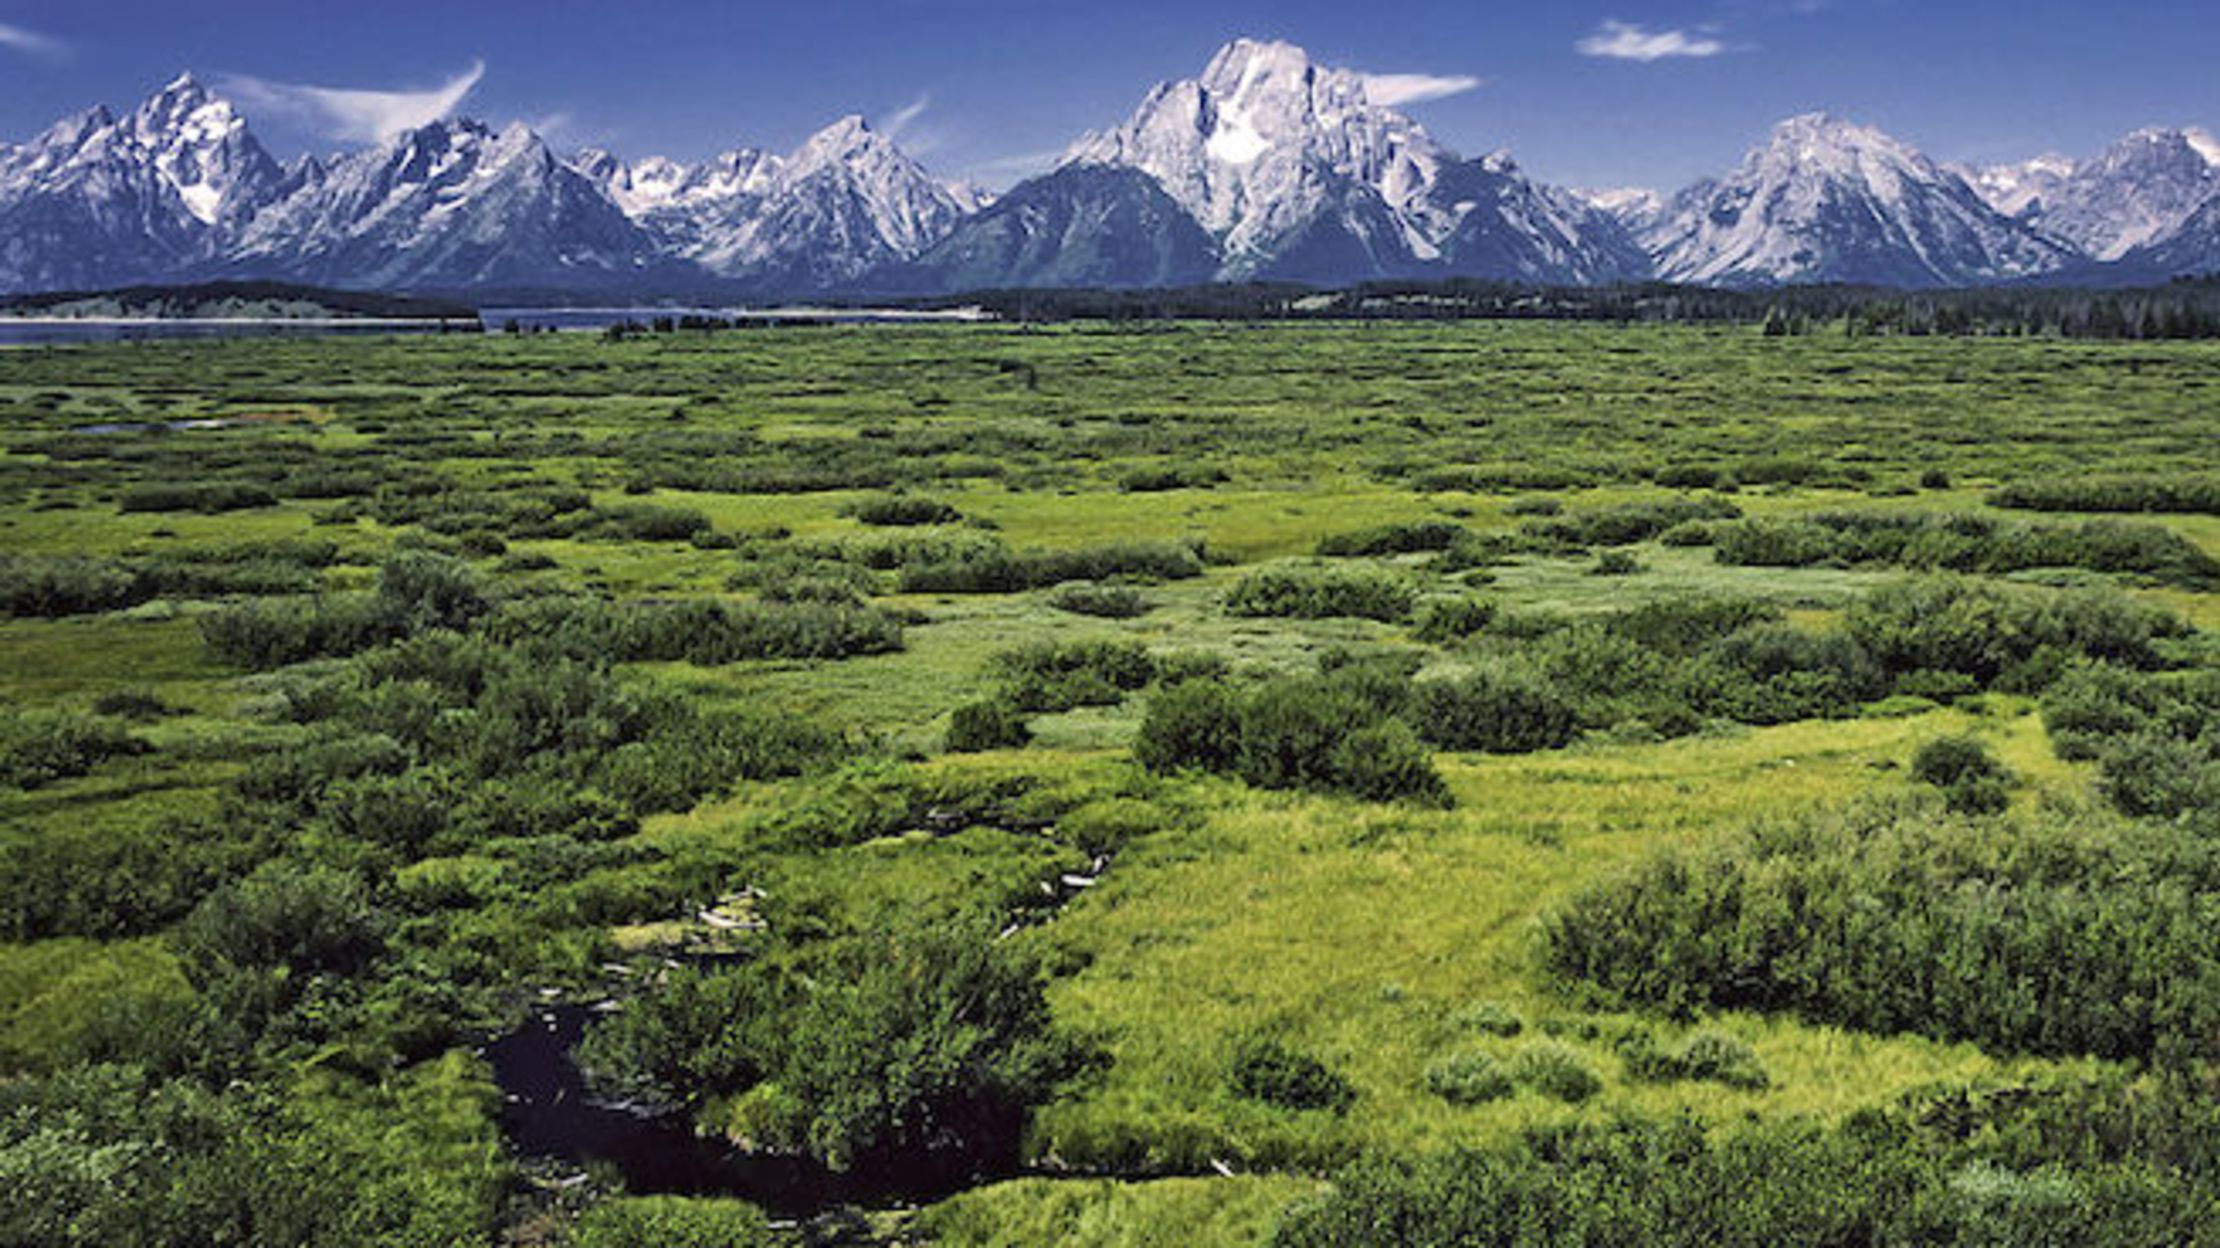 10 Elevated Facts About Grand Teton National Park